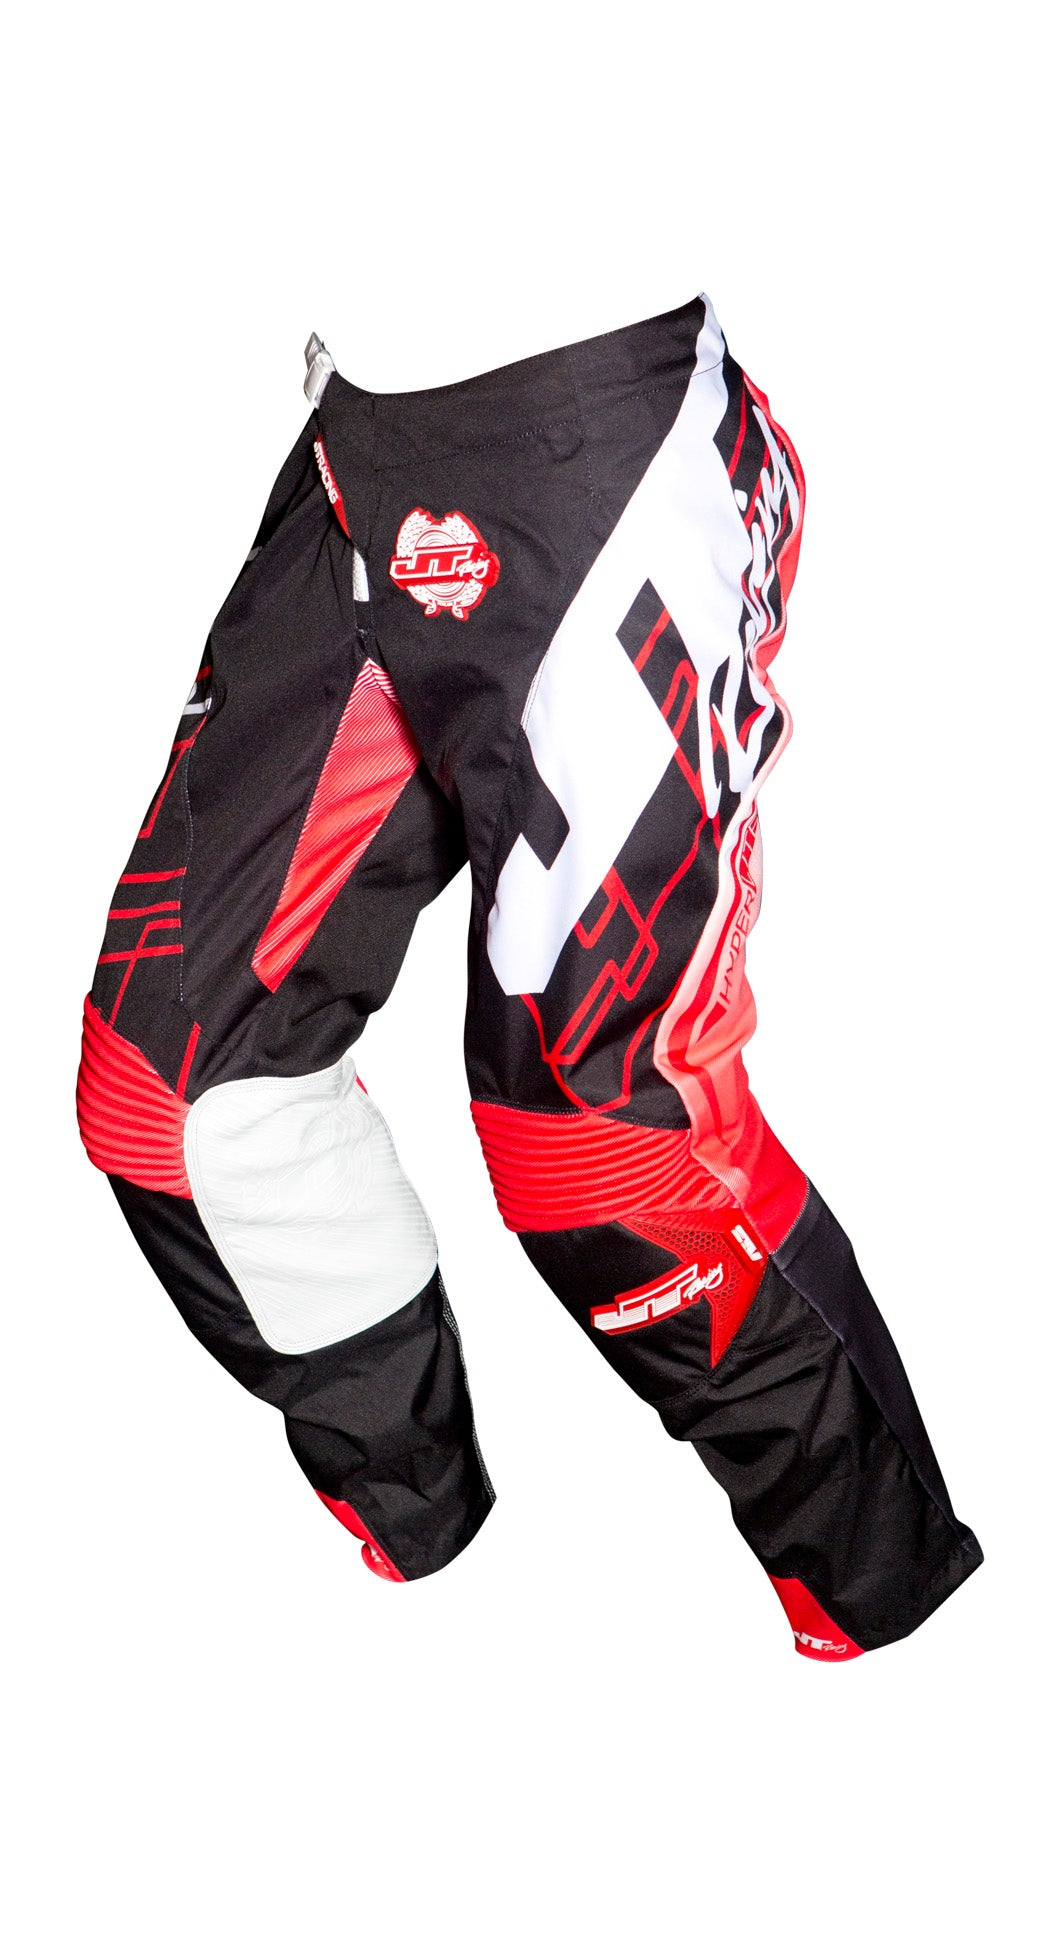 JT RACING USA-2018 Hyperlite Shuffle Pants, Black/Fluro Red/White